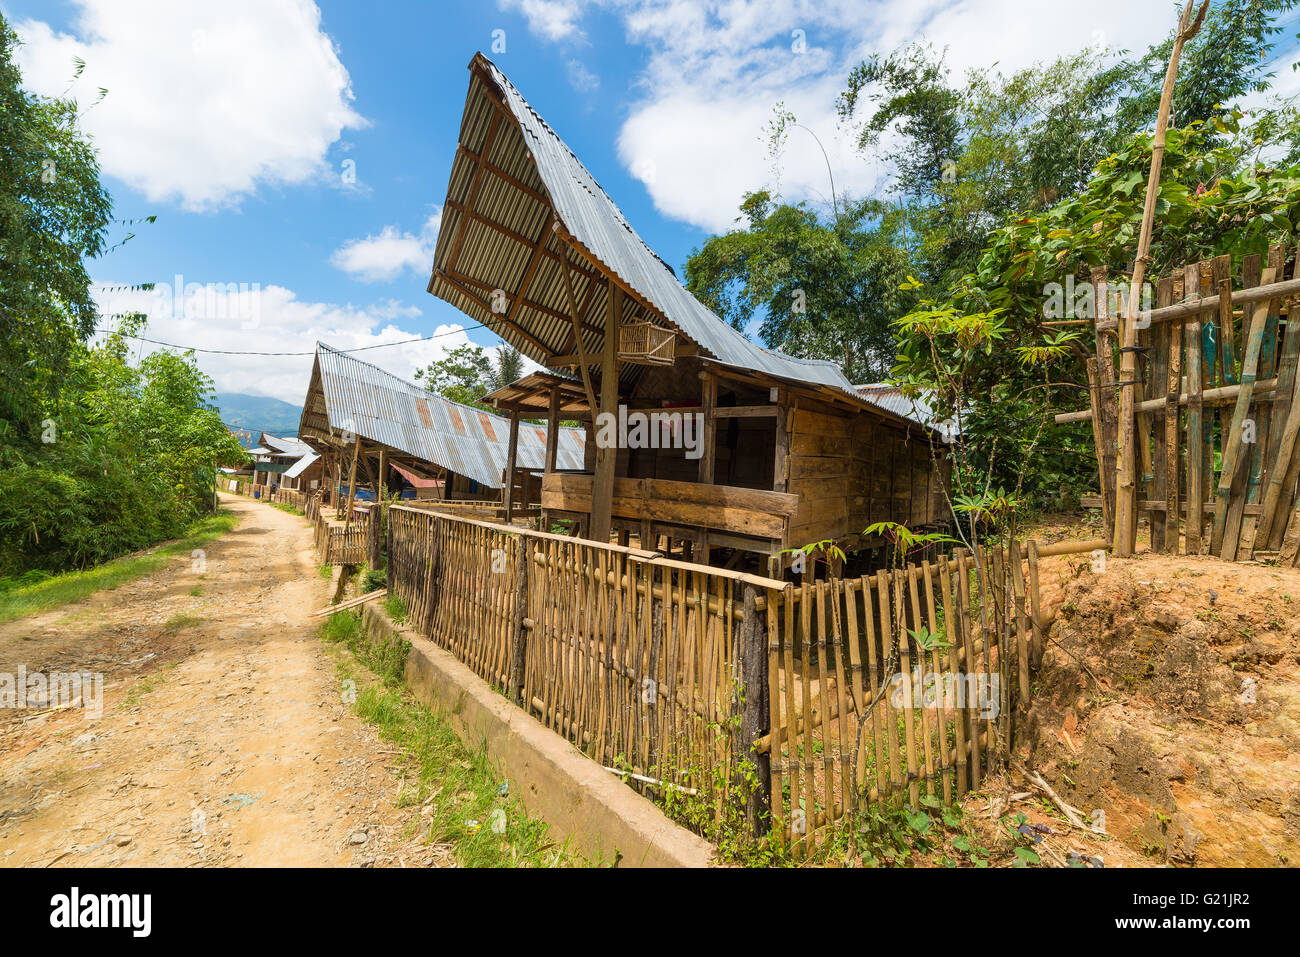 Outstanding and unique local architecture, wooden buildings with boat shaped rooftop and traditional decoration, - Stock Image